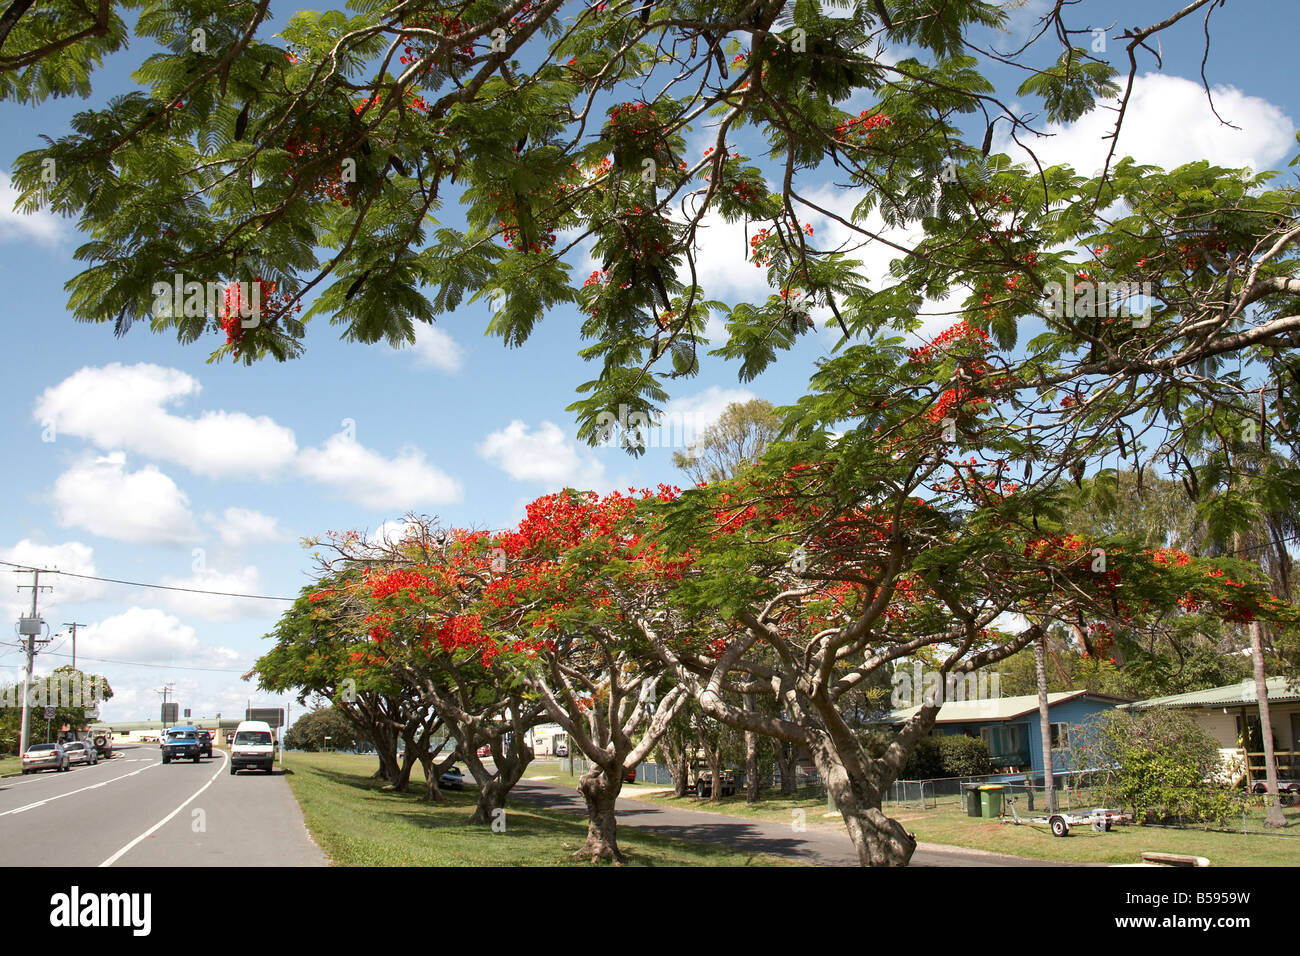 Ponciana trees with flame red flowers by road on North Stradbrook Island Queensland QLD Australia - Stock Image